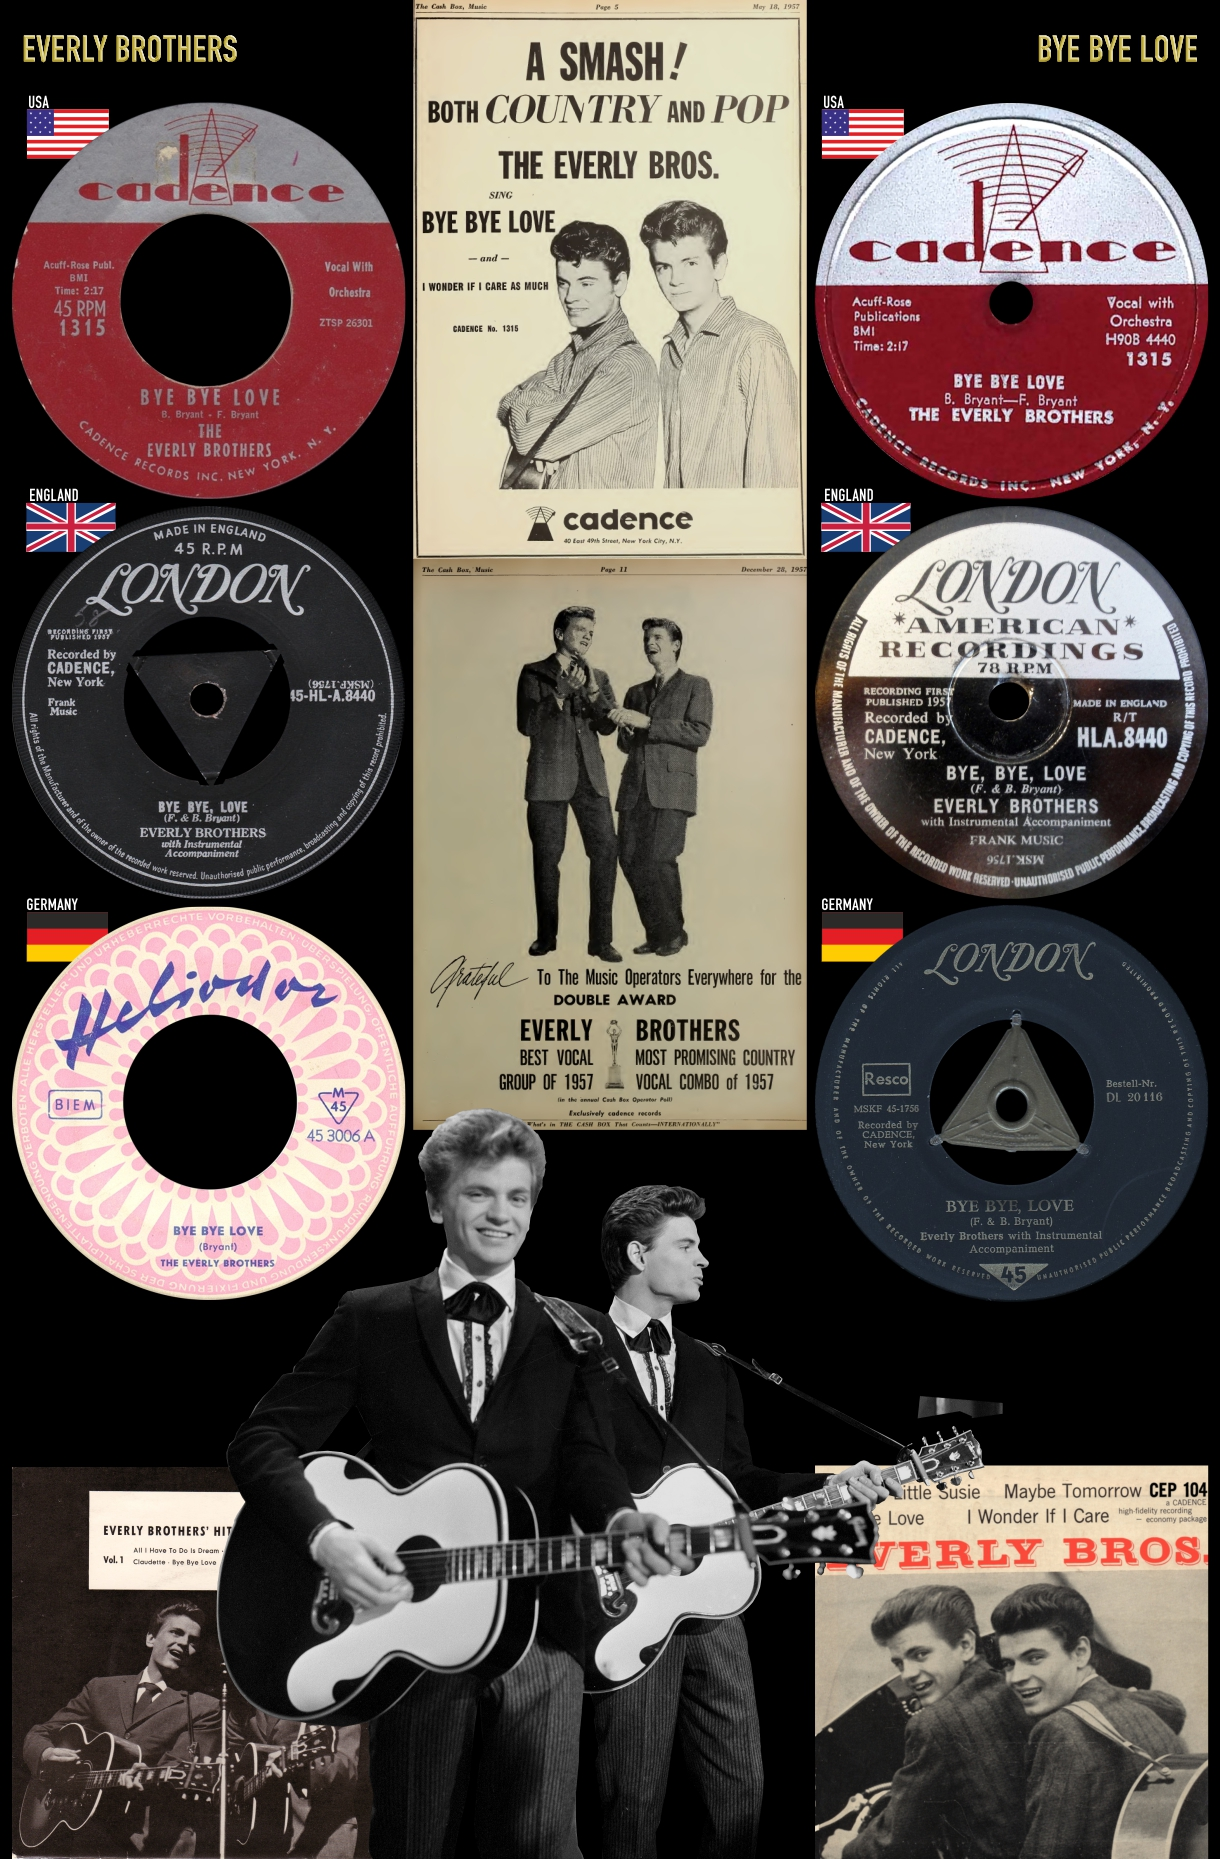 570525_Everly Brothers_Bye Bye Love